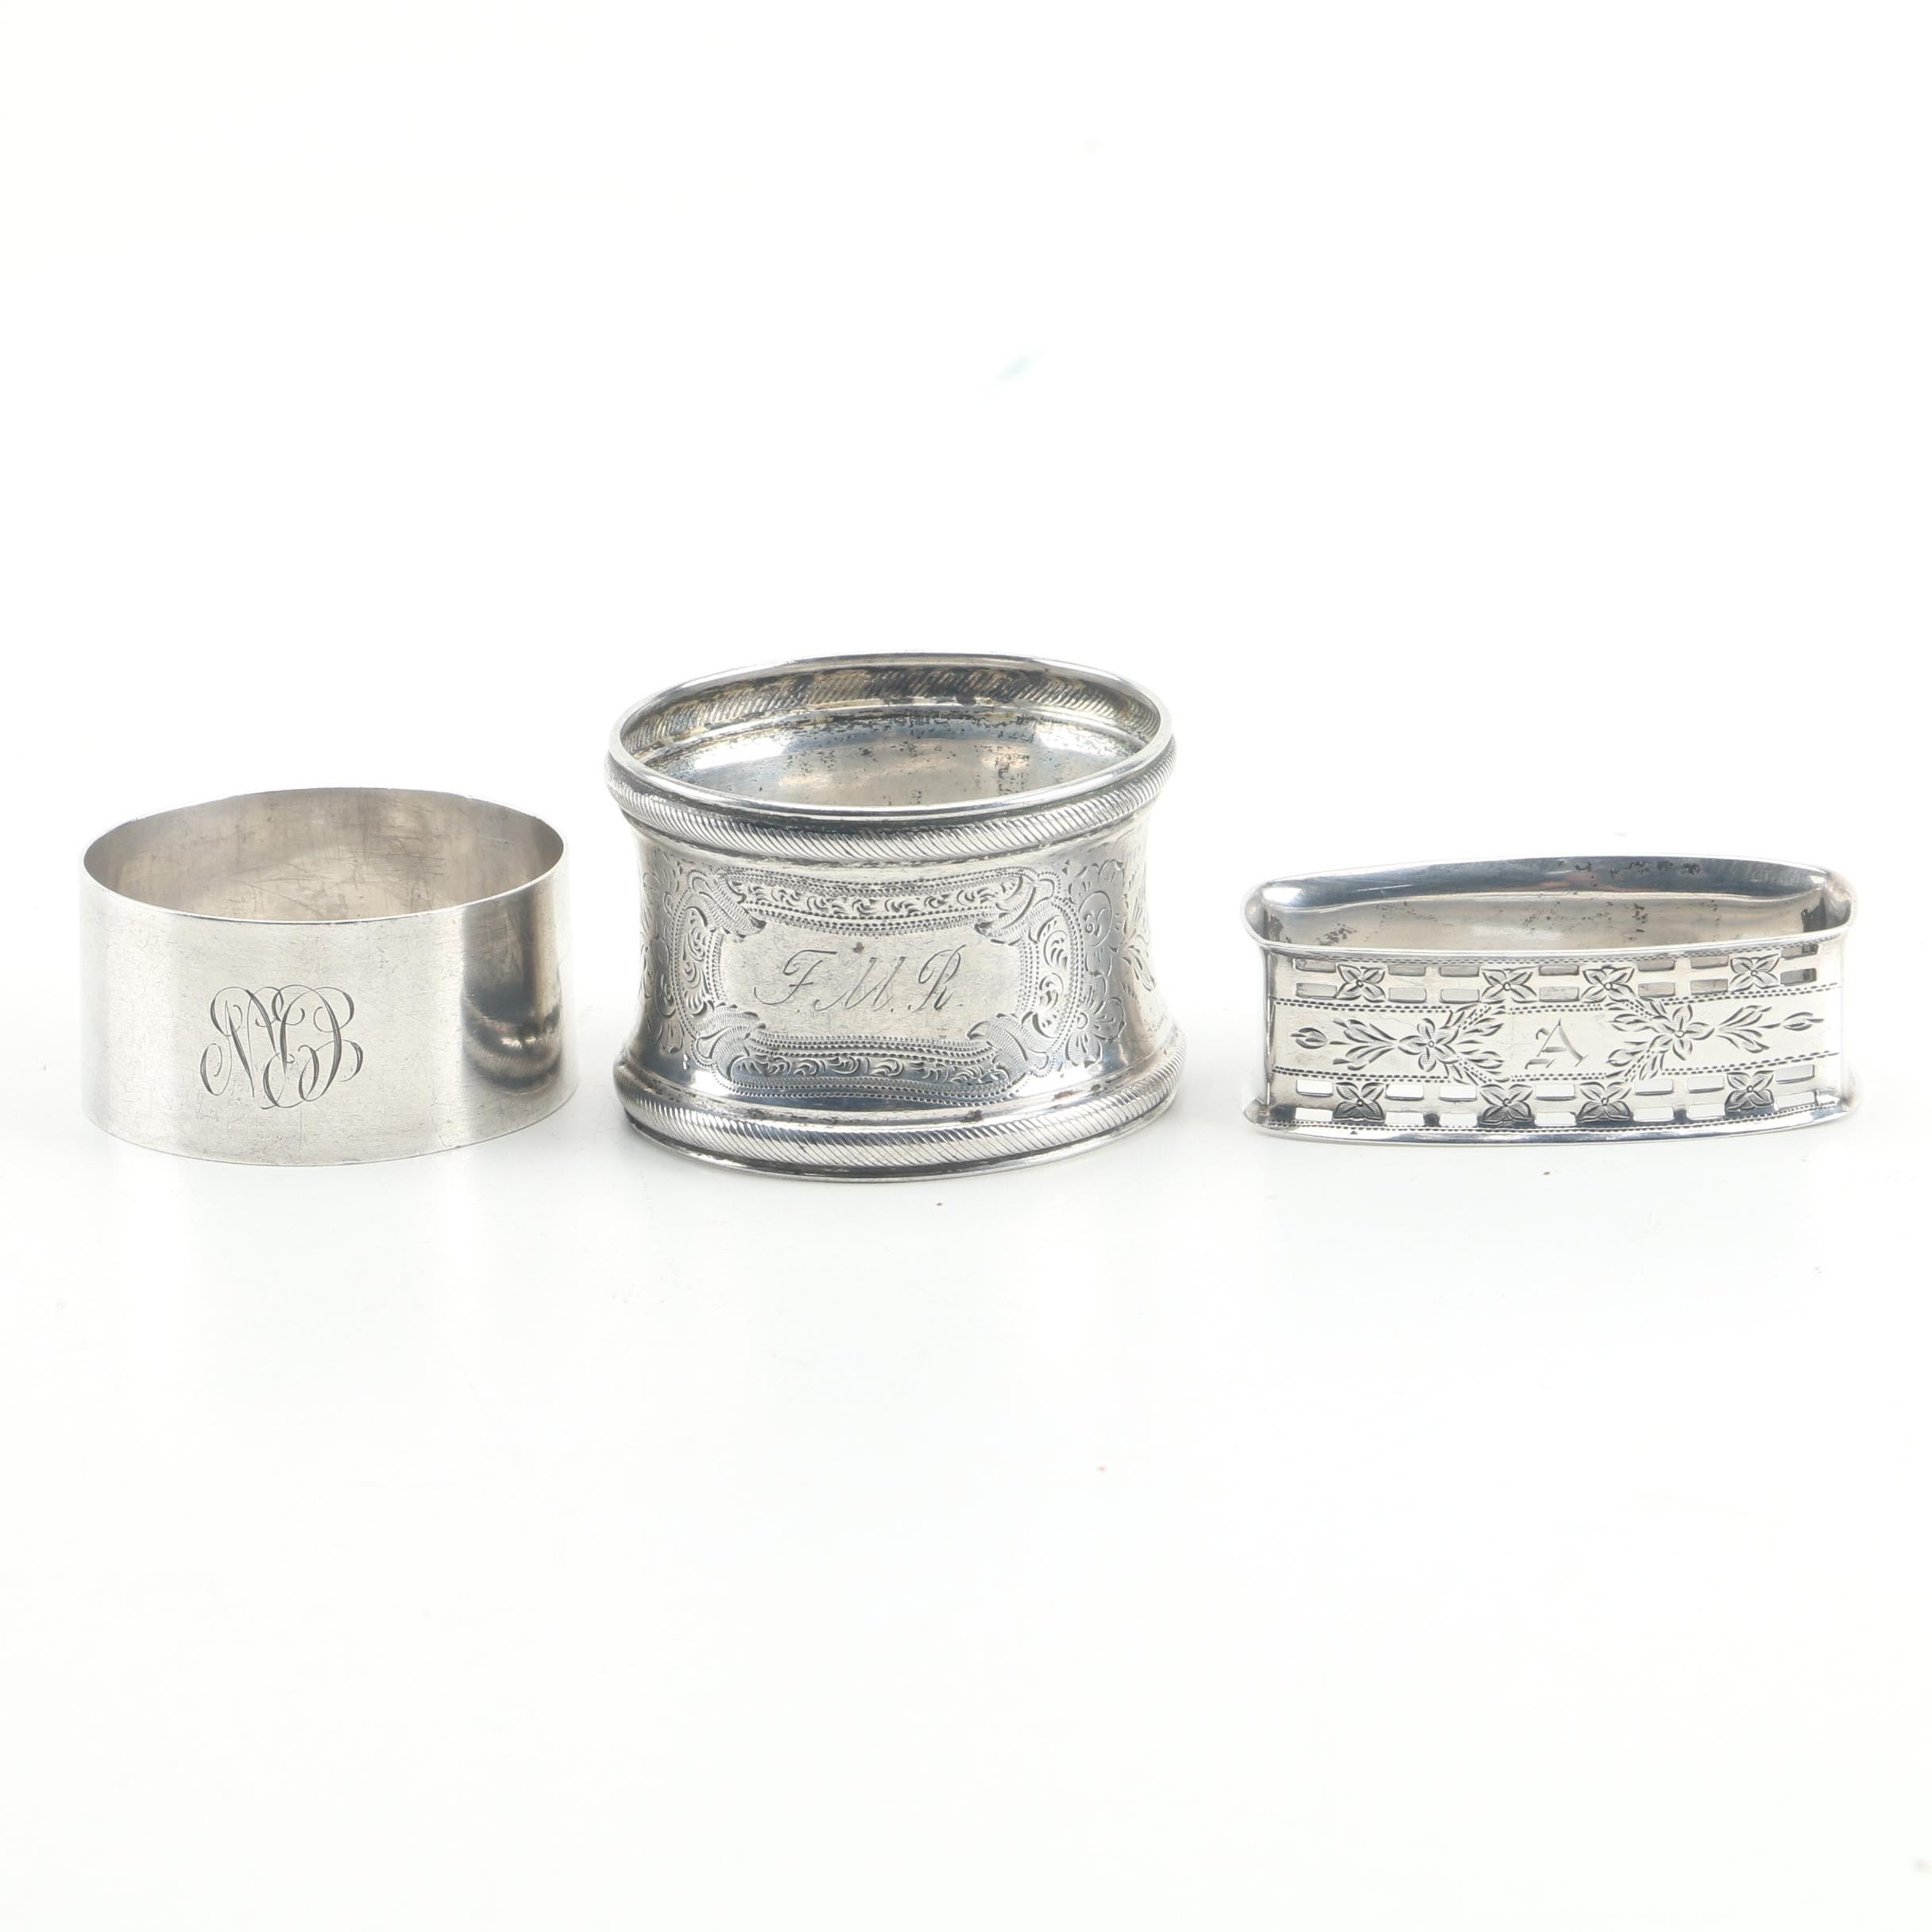 Vintage C.T. Burrows & Sons Sterling Napkin Ring with Other Silver Napkin Rings